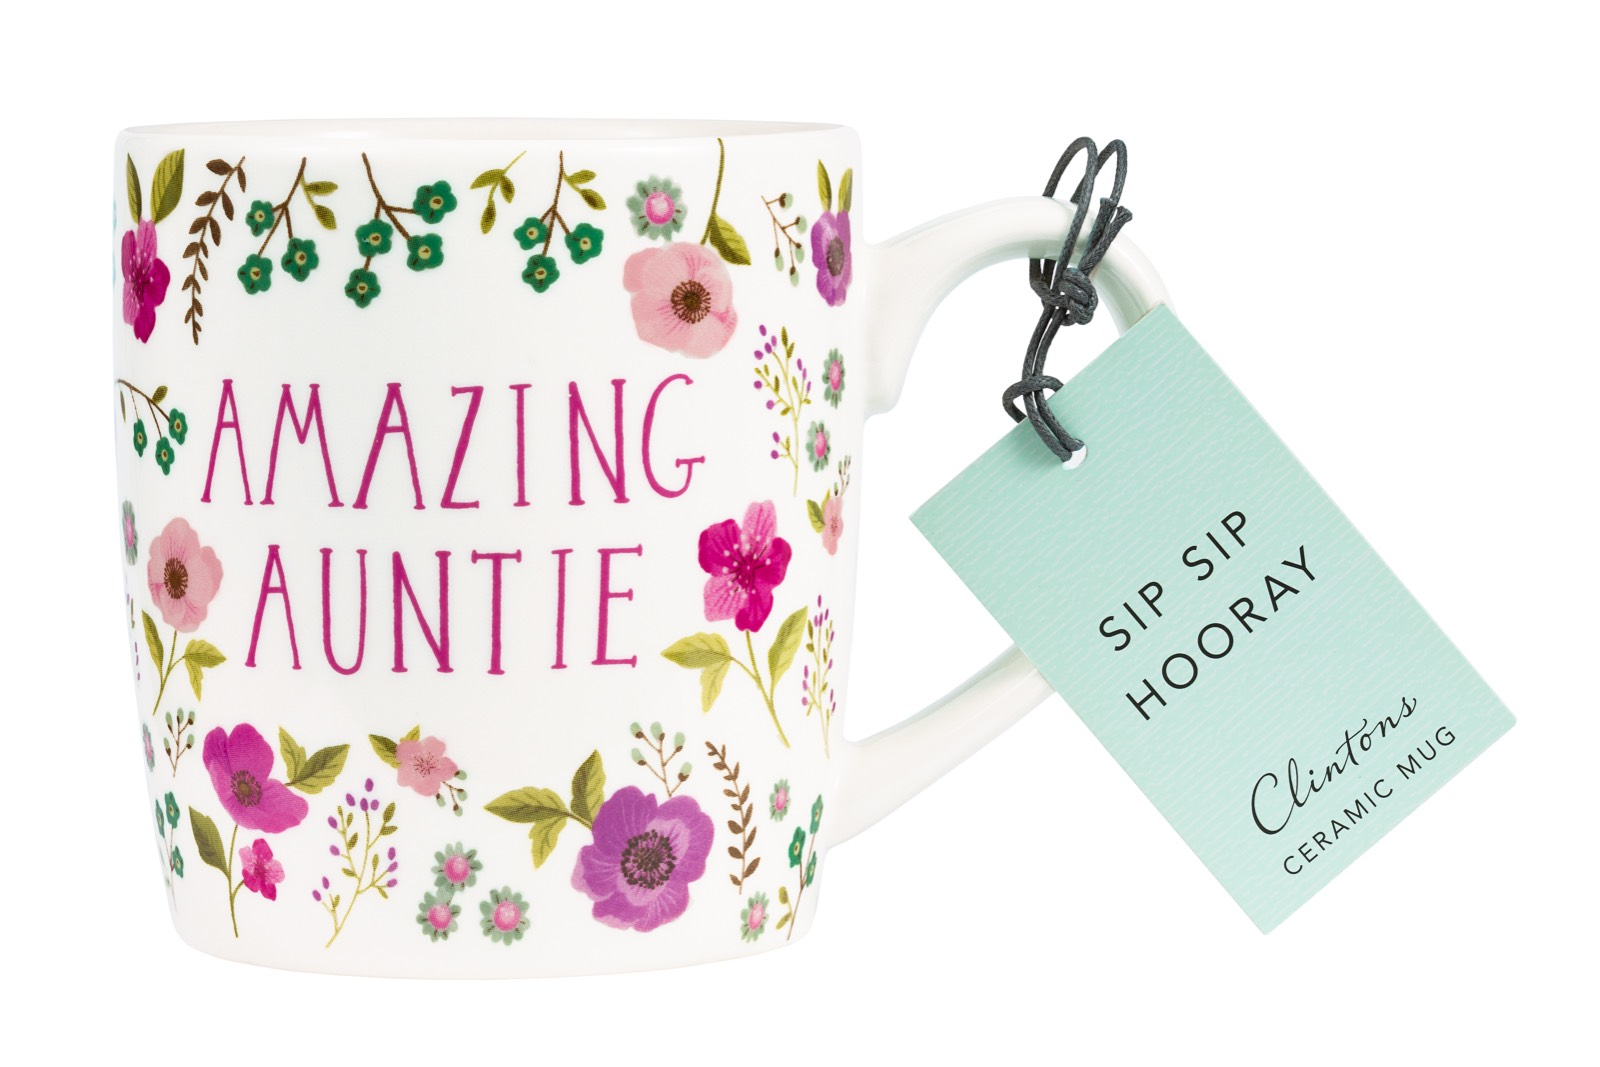 retail product photograph of amazing auntie ceramic mug on white background